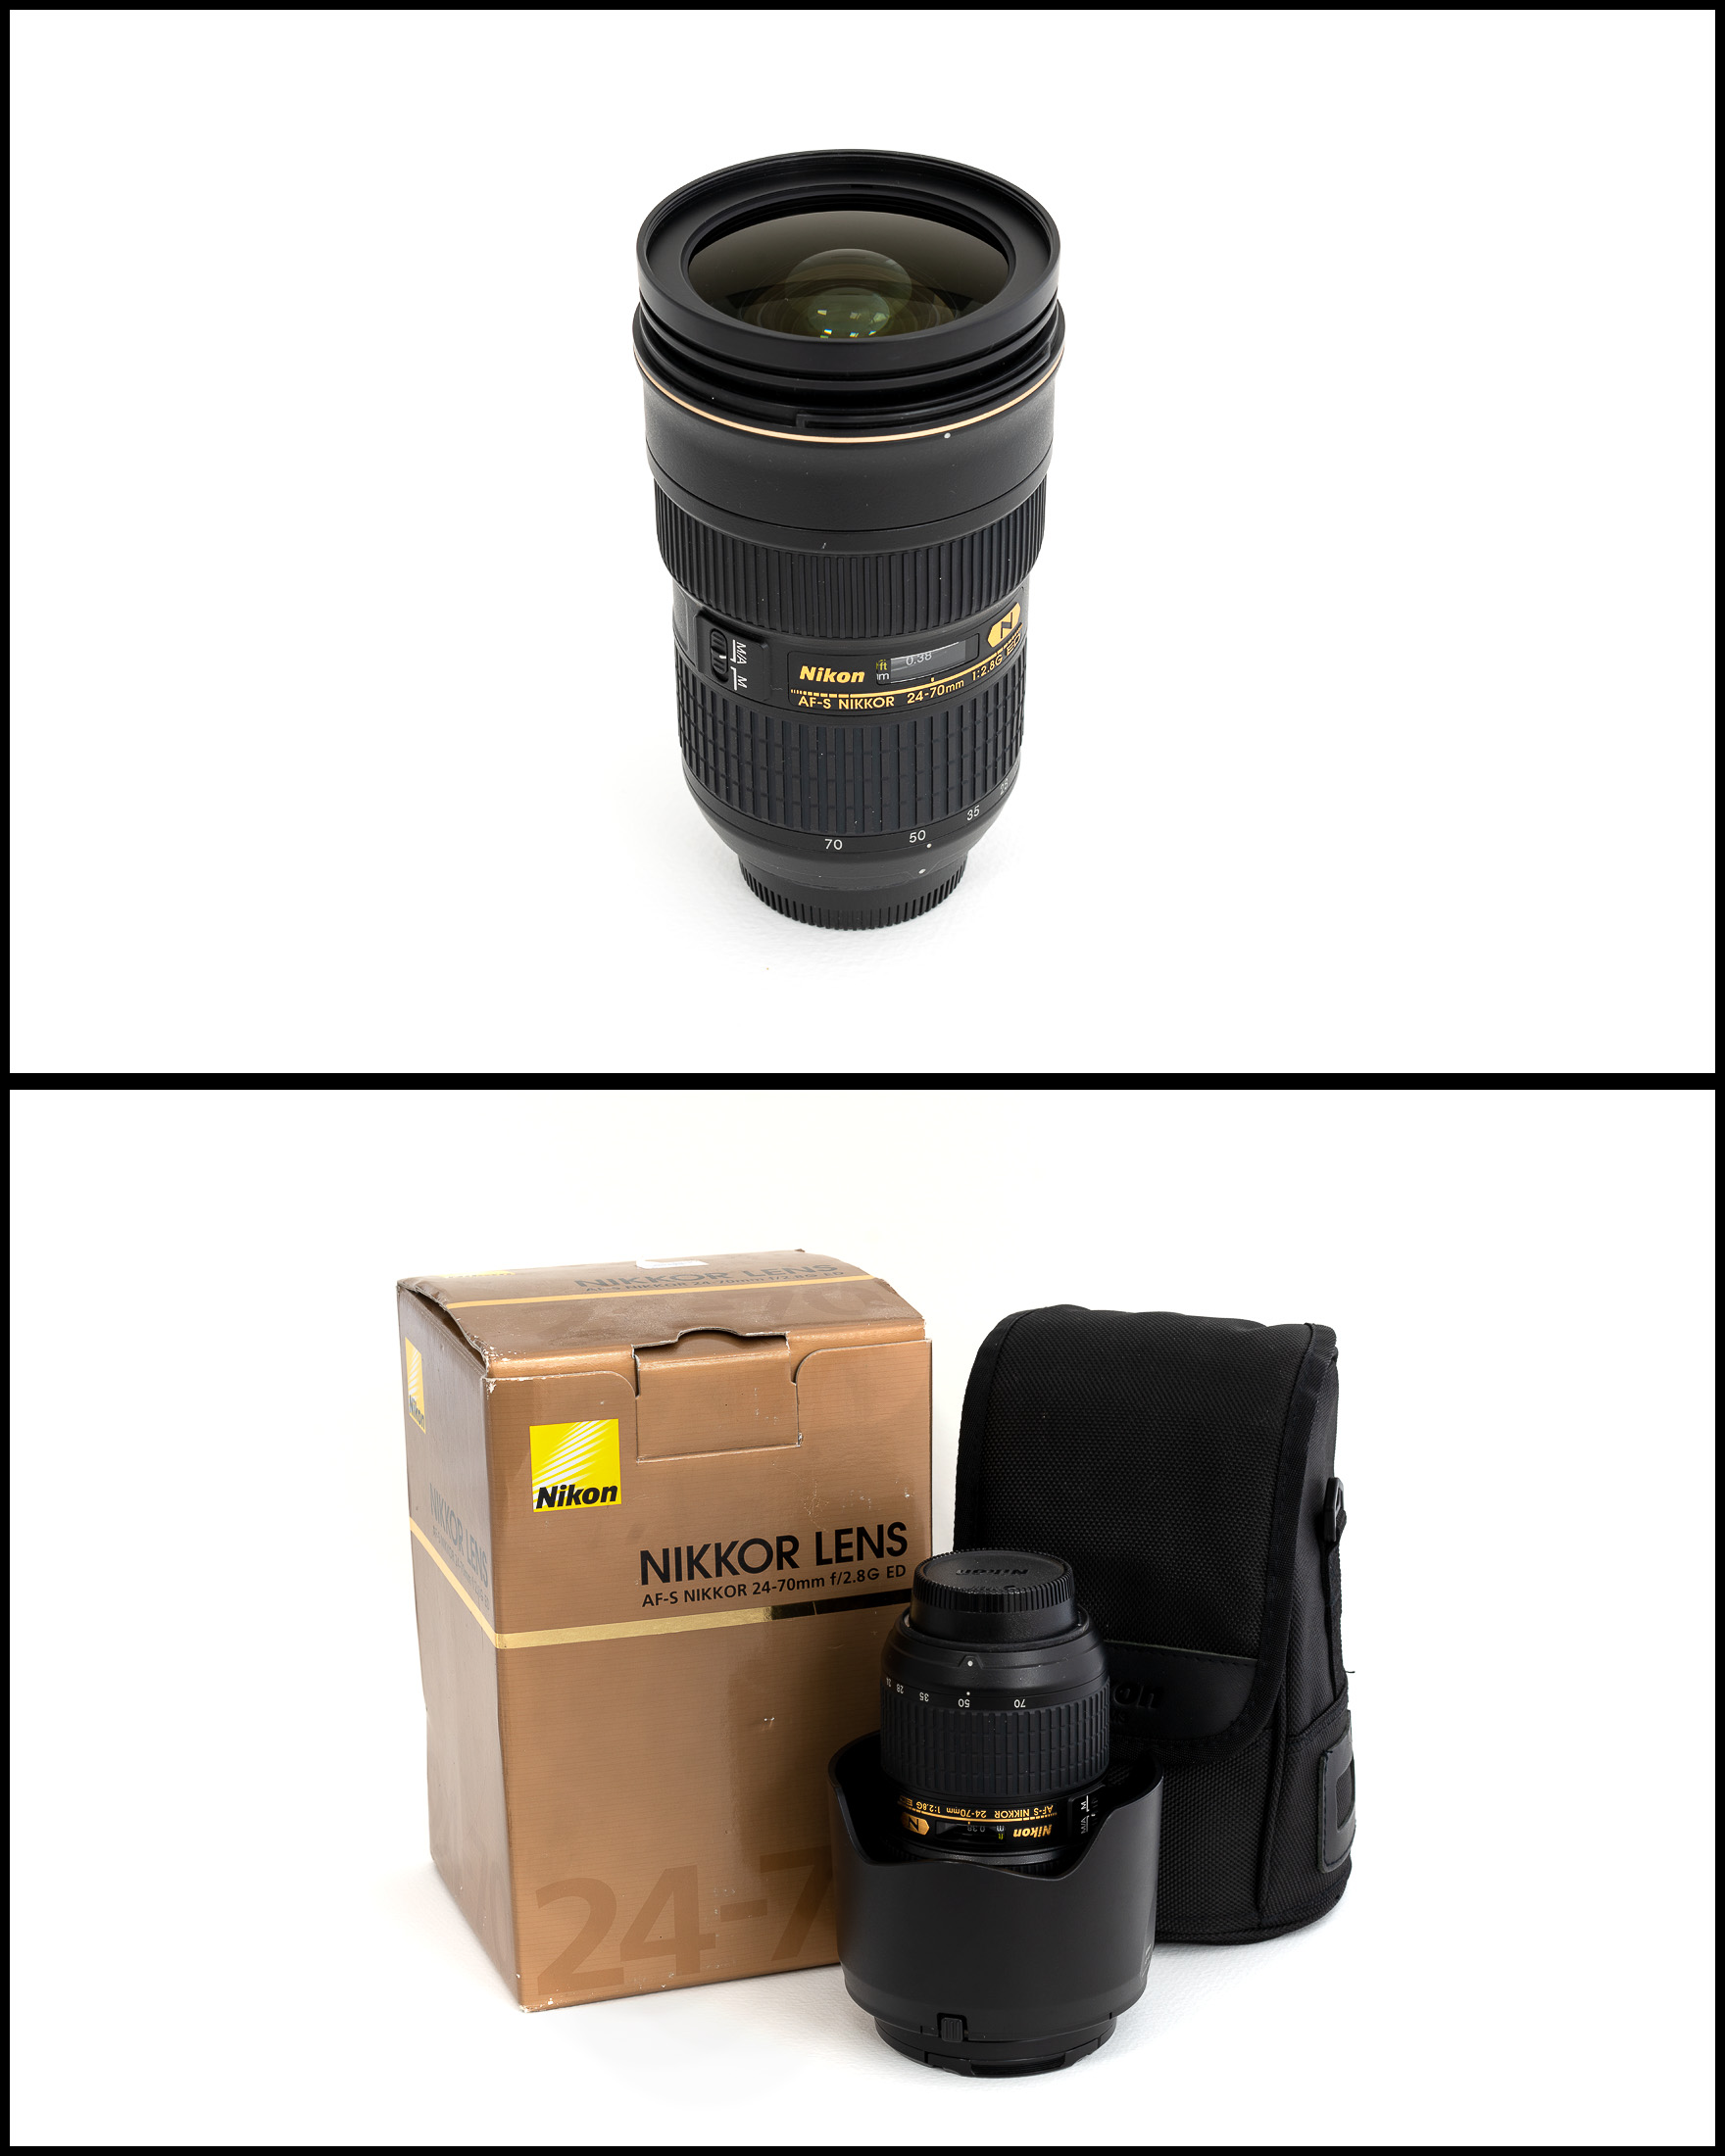 Nikkor/Nikon AF-S 24-70 f/2.8G ED    £950   In excellent condition comes with lens hood, front and rear caps, manual, pouch and original box.